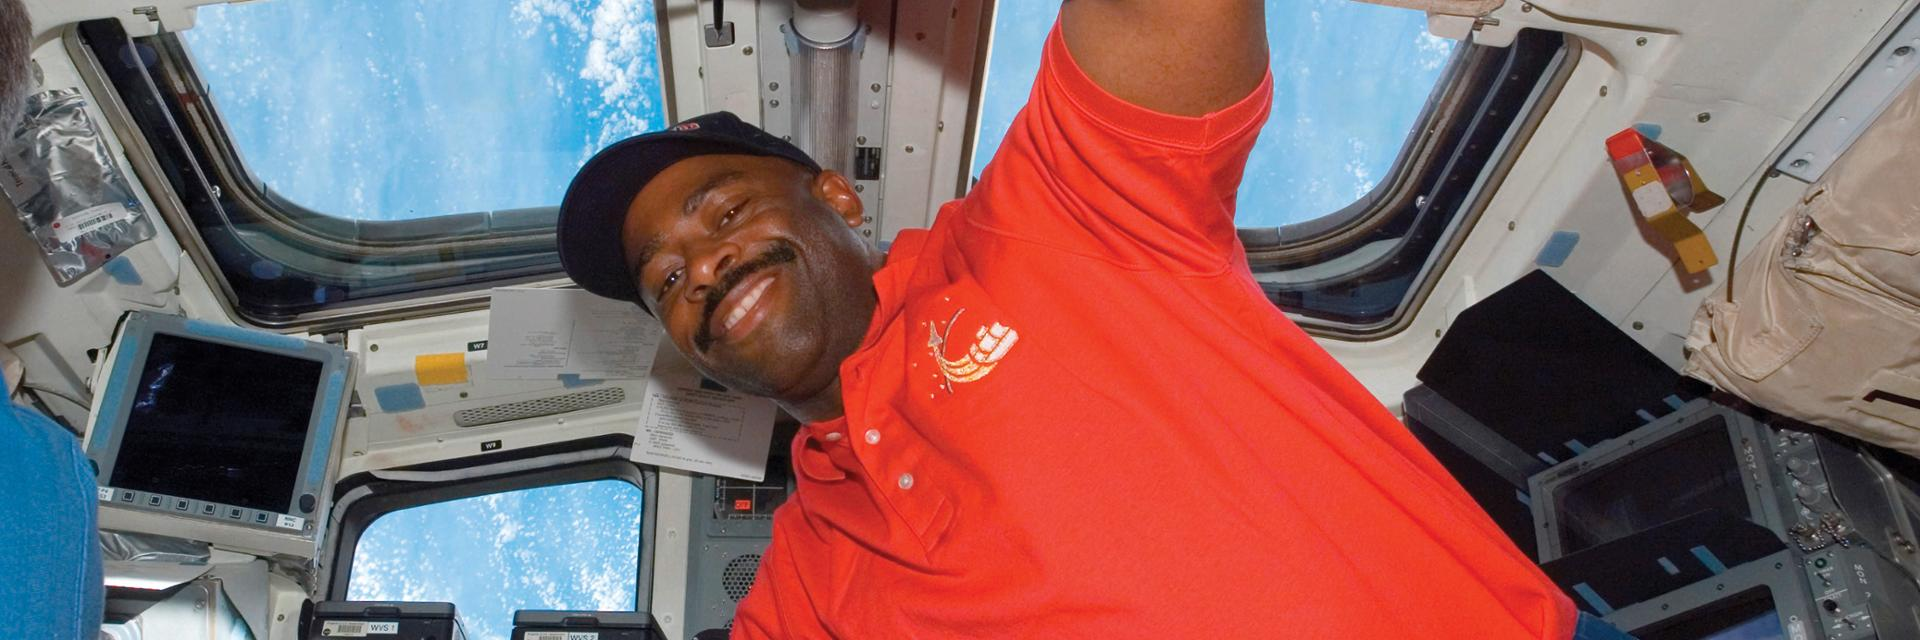 Leland Melvin floats aboard the International Space Station